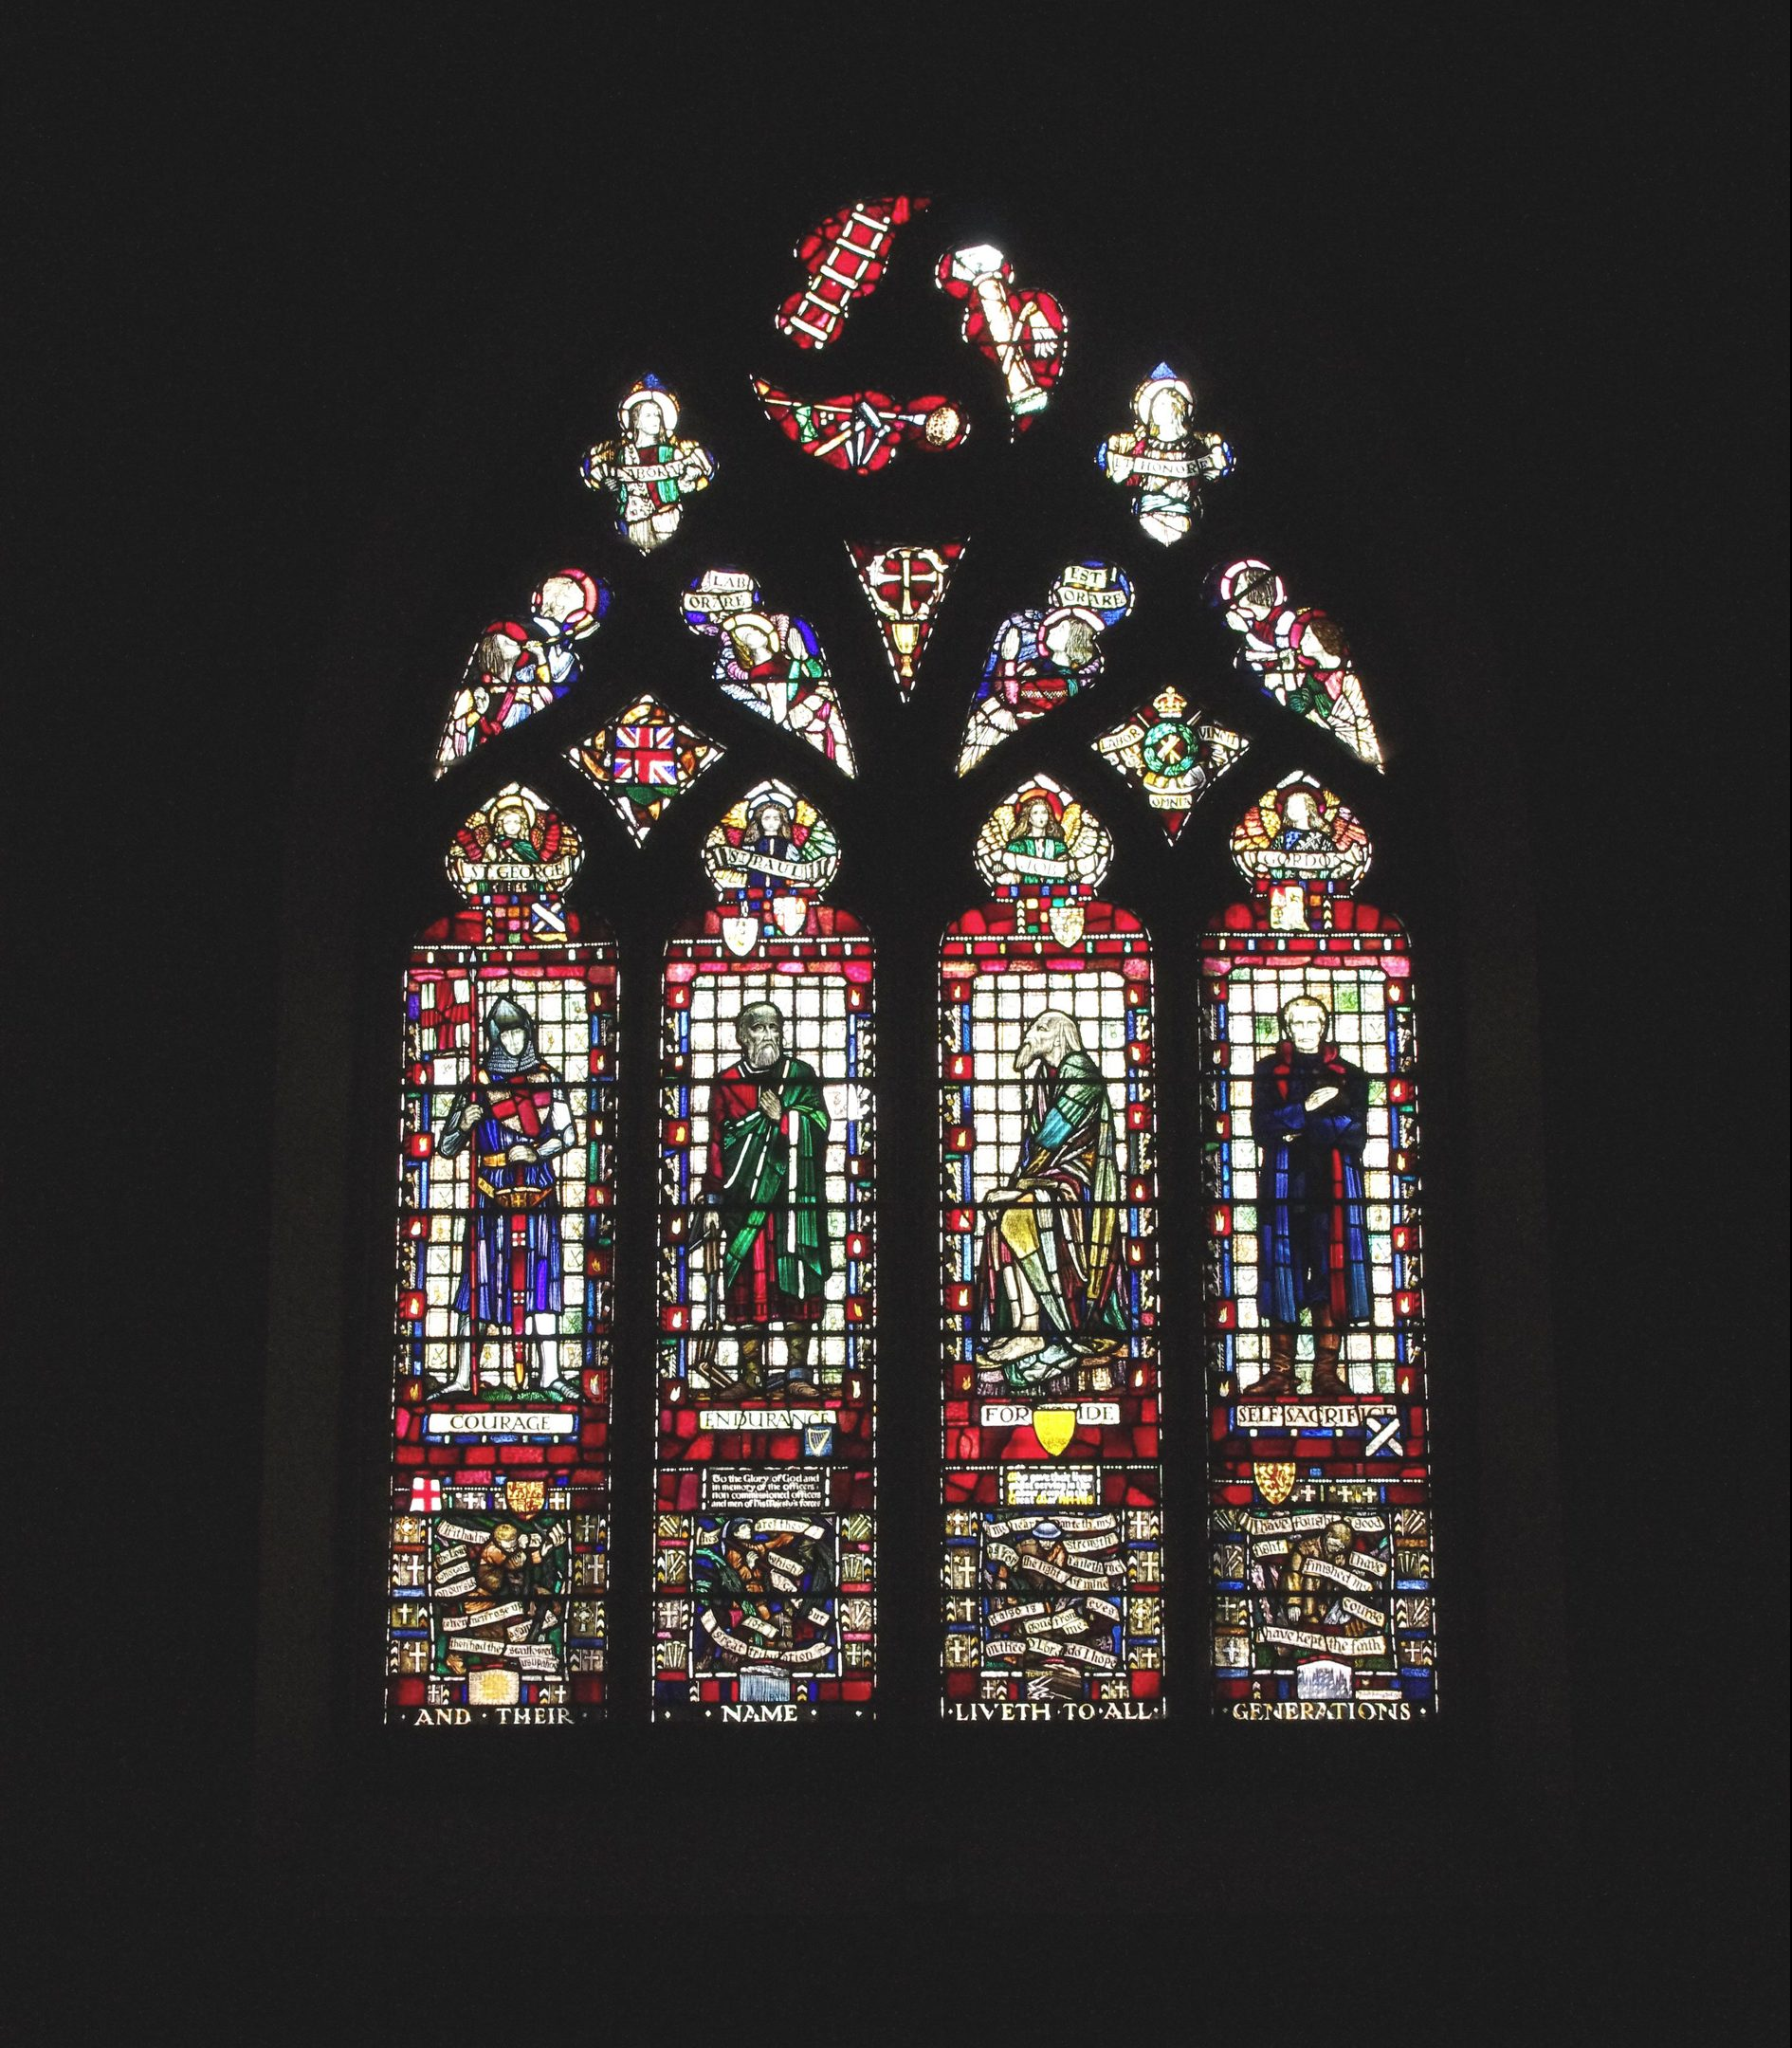 The spectacular stained glass window dates back to the 1920s and will be backlit at night.